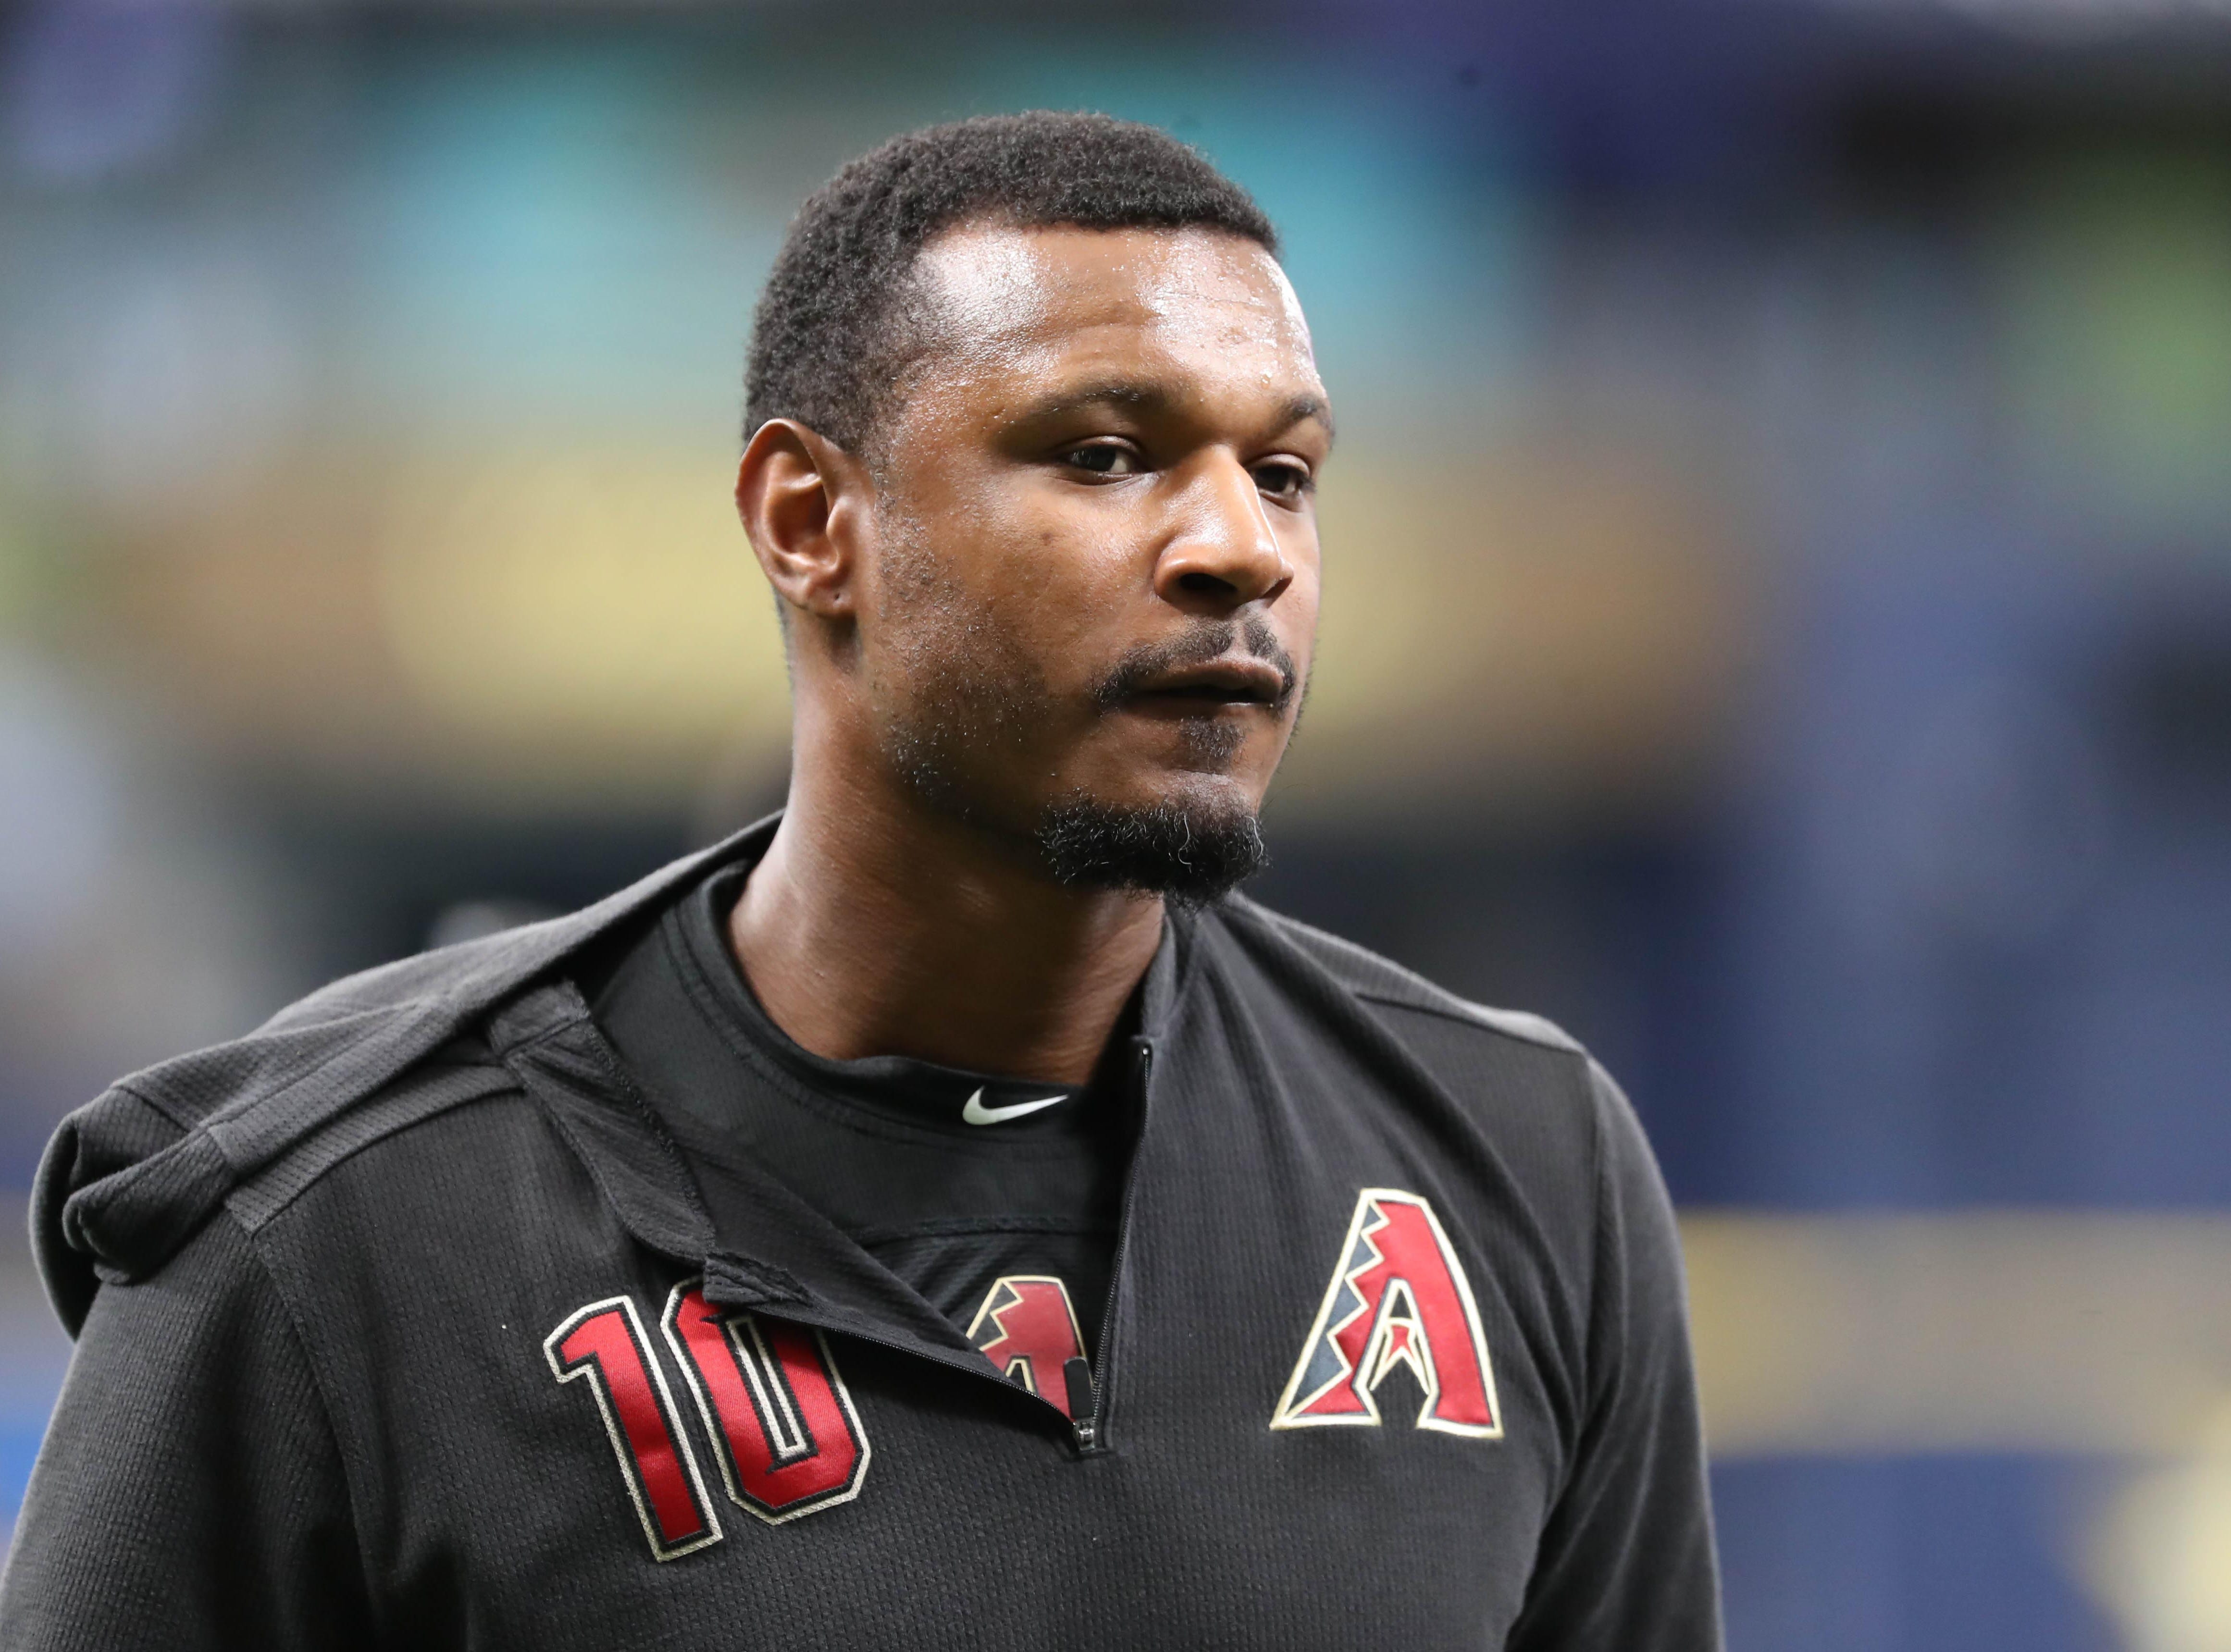 May 7, 2019; St. Petersburg, FL, USA; Arizona Diamondbacks right fielder Adam Jones (10) works out prior to the game against the Tampa Bay Rays at Tropicana Field. Mandatory Credit: Kim Klement-USA TODAY Sports